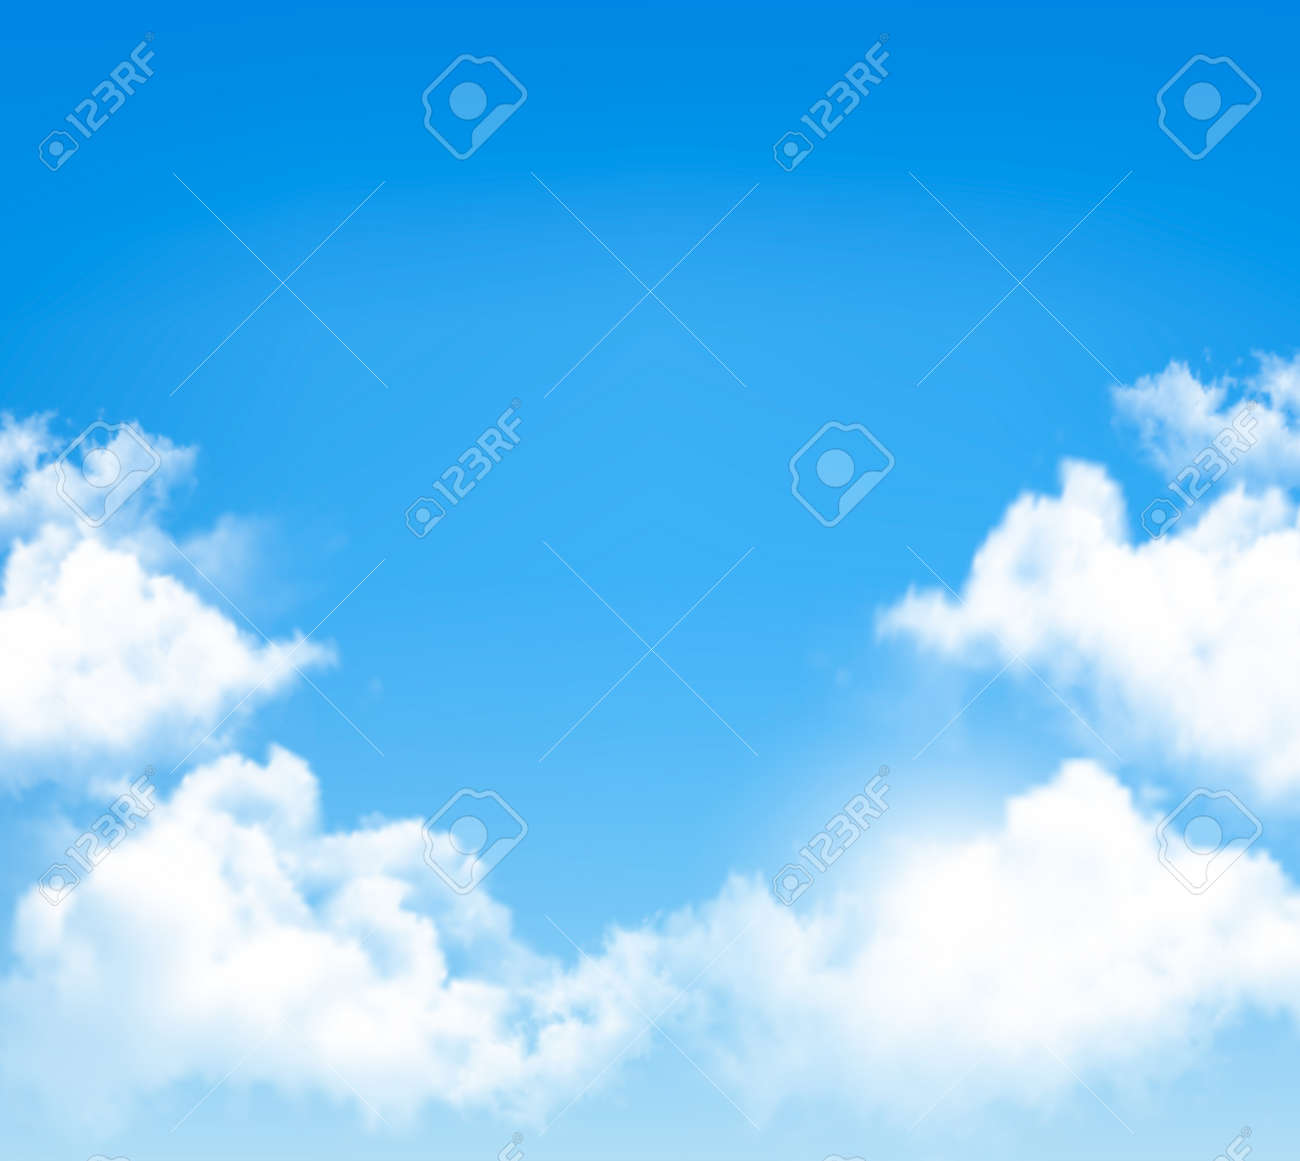 hight resolution of background with blue sky and clouds vector illustration